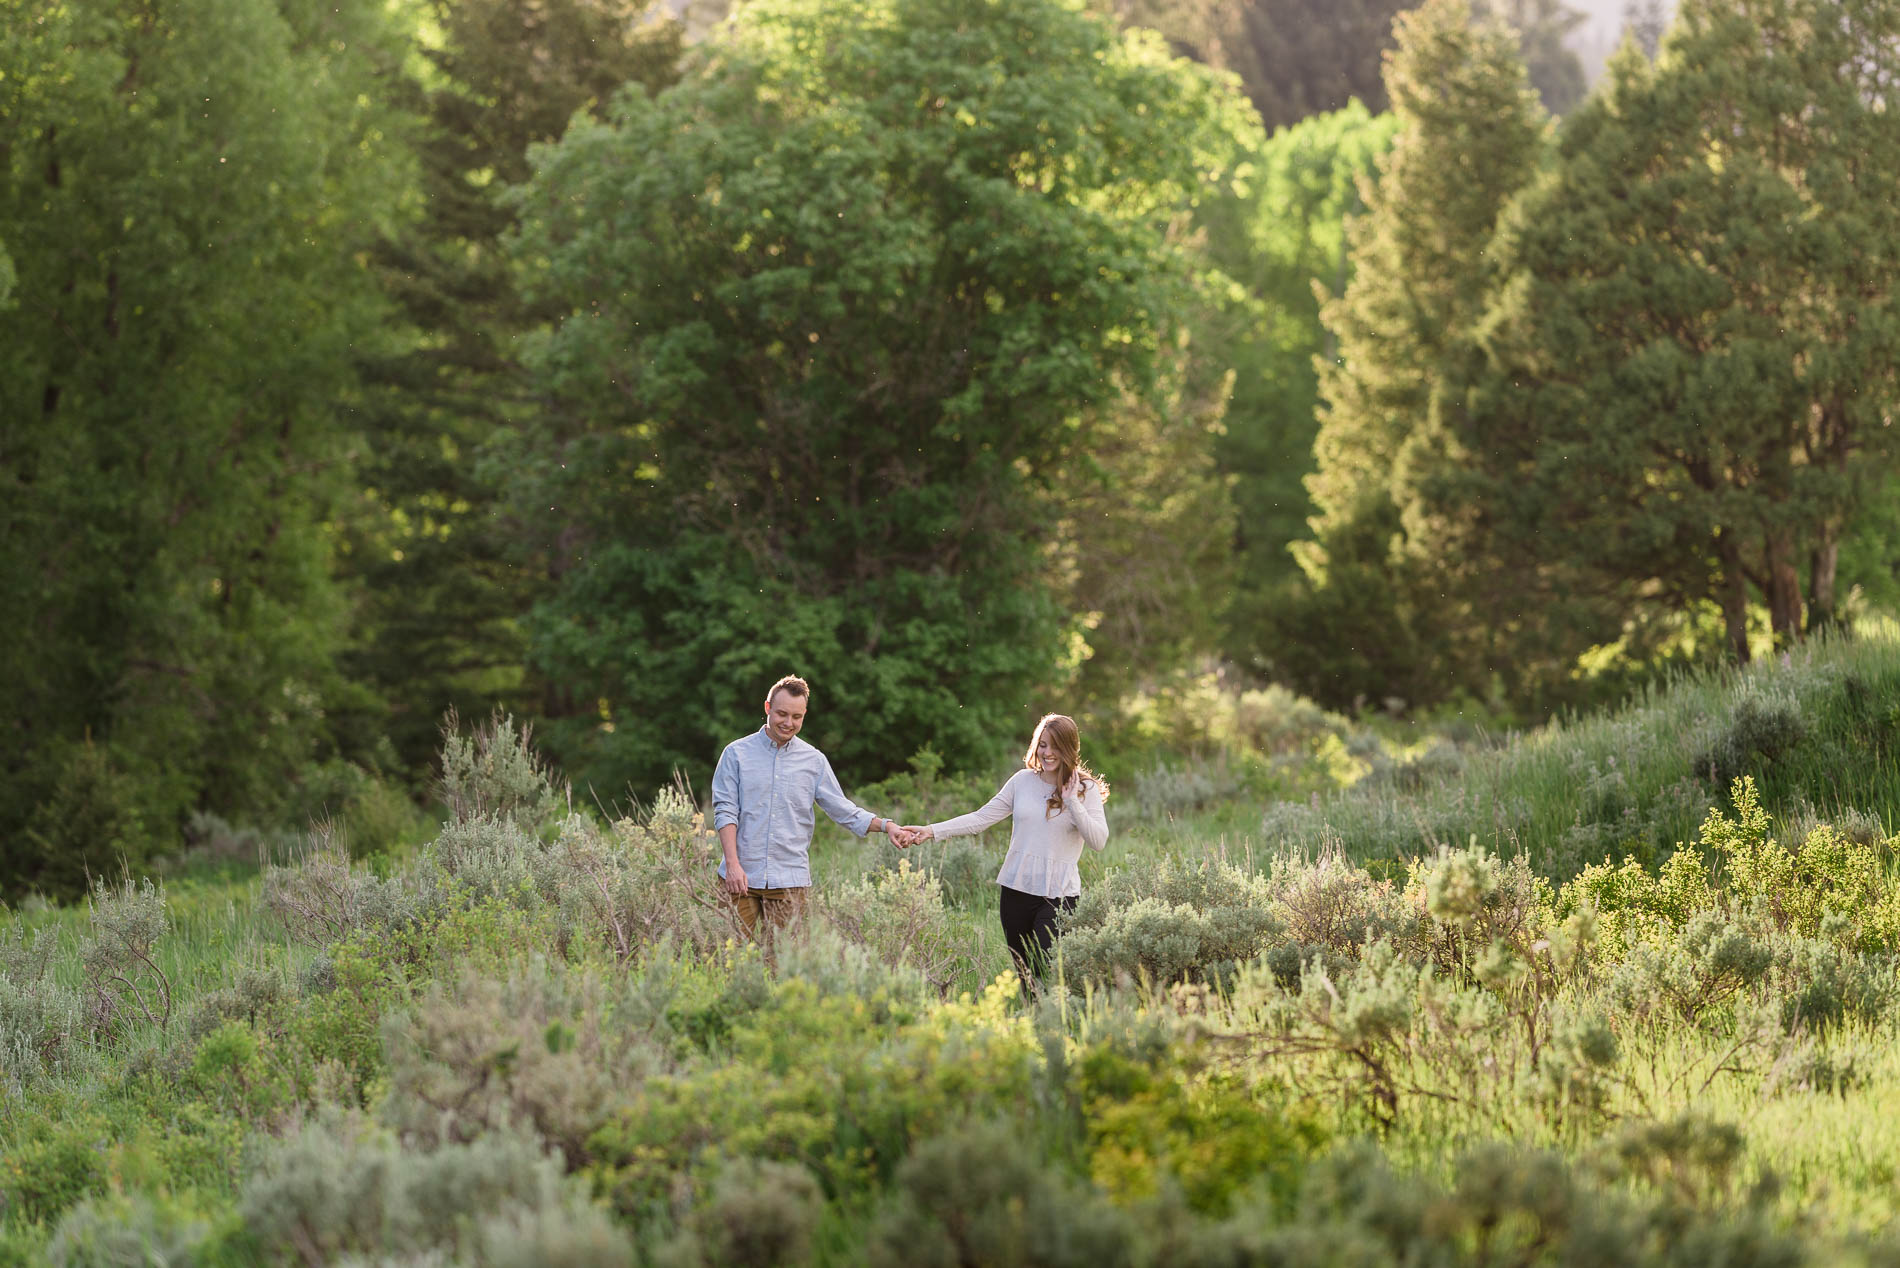 Couple walking through the brush with pine trees in the background for engagement photography at Tibble Fork.